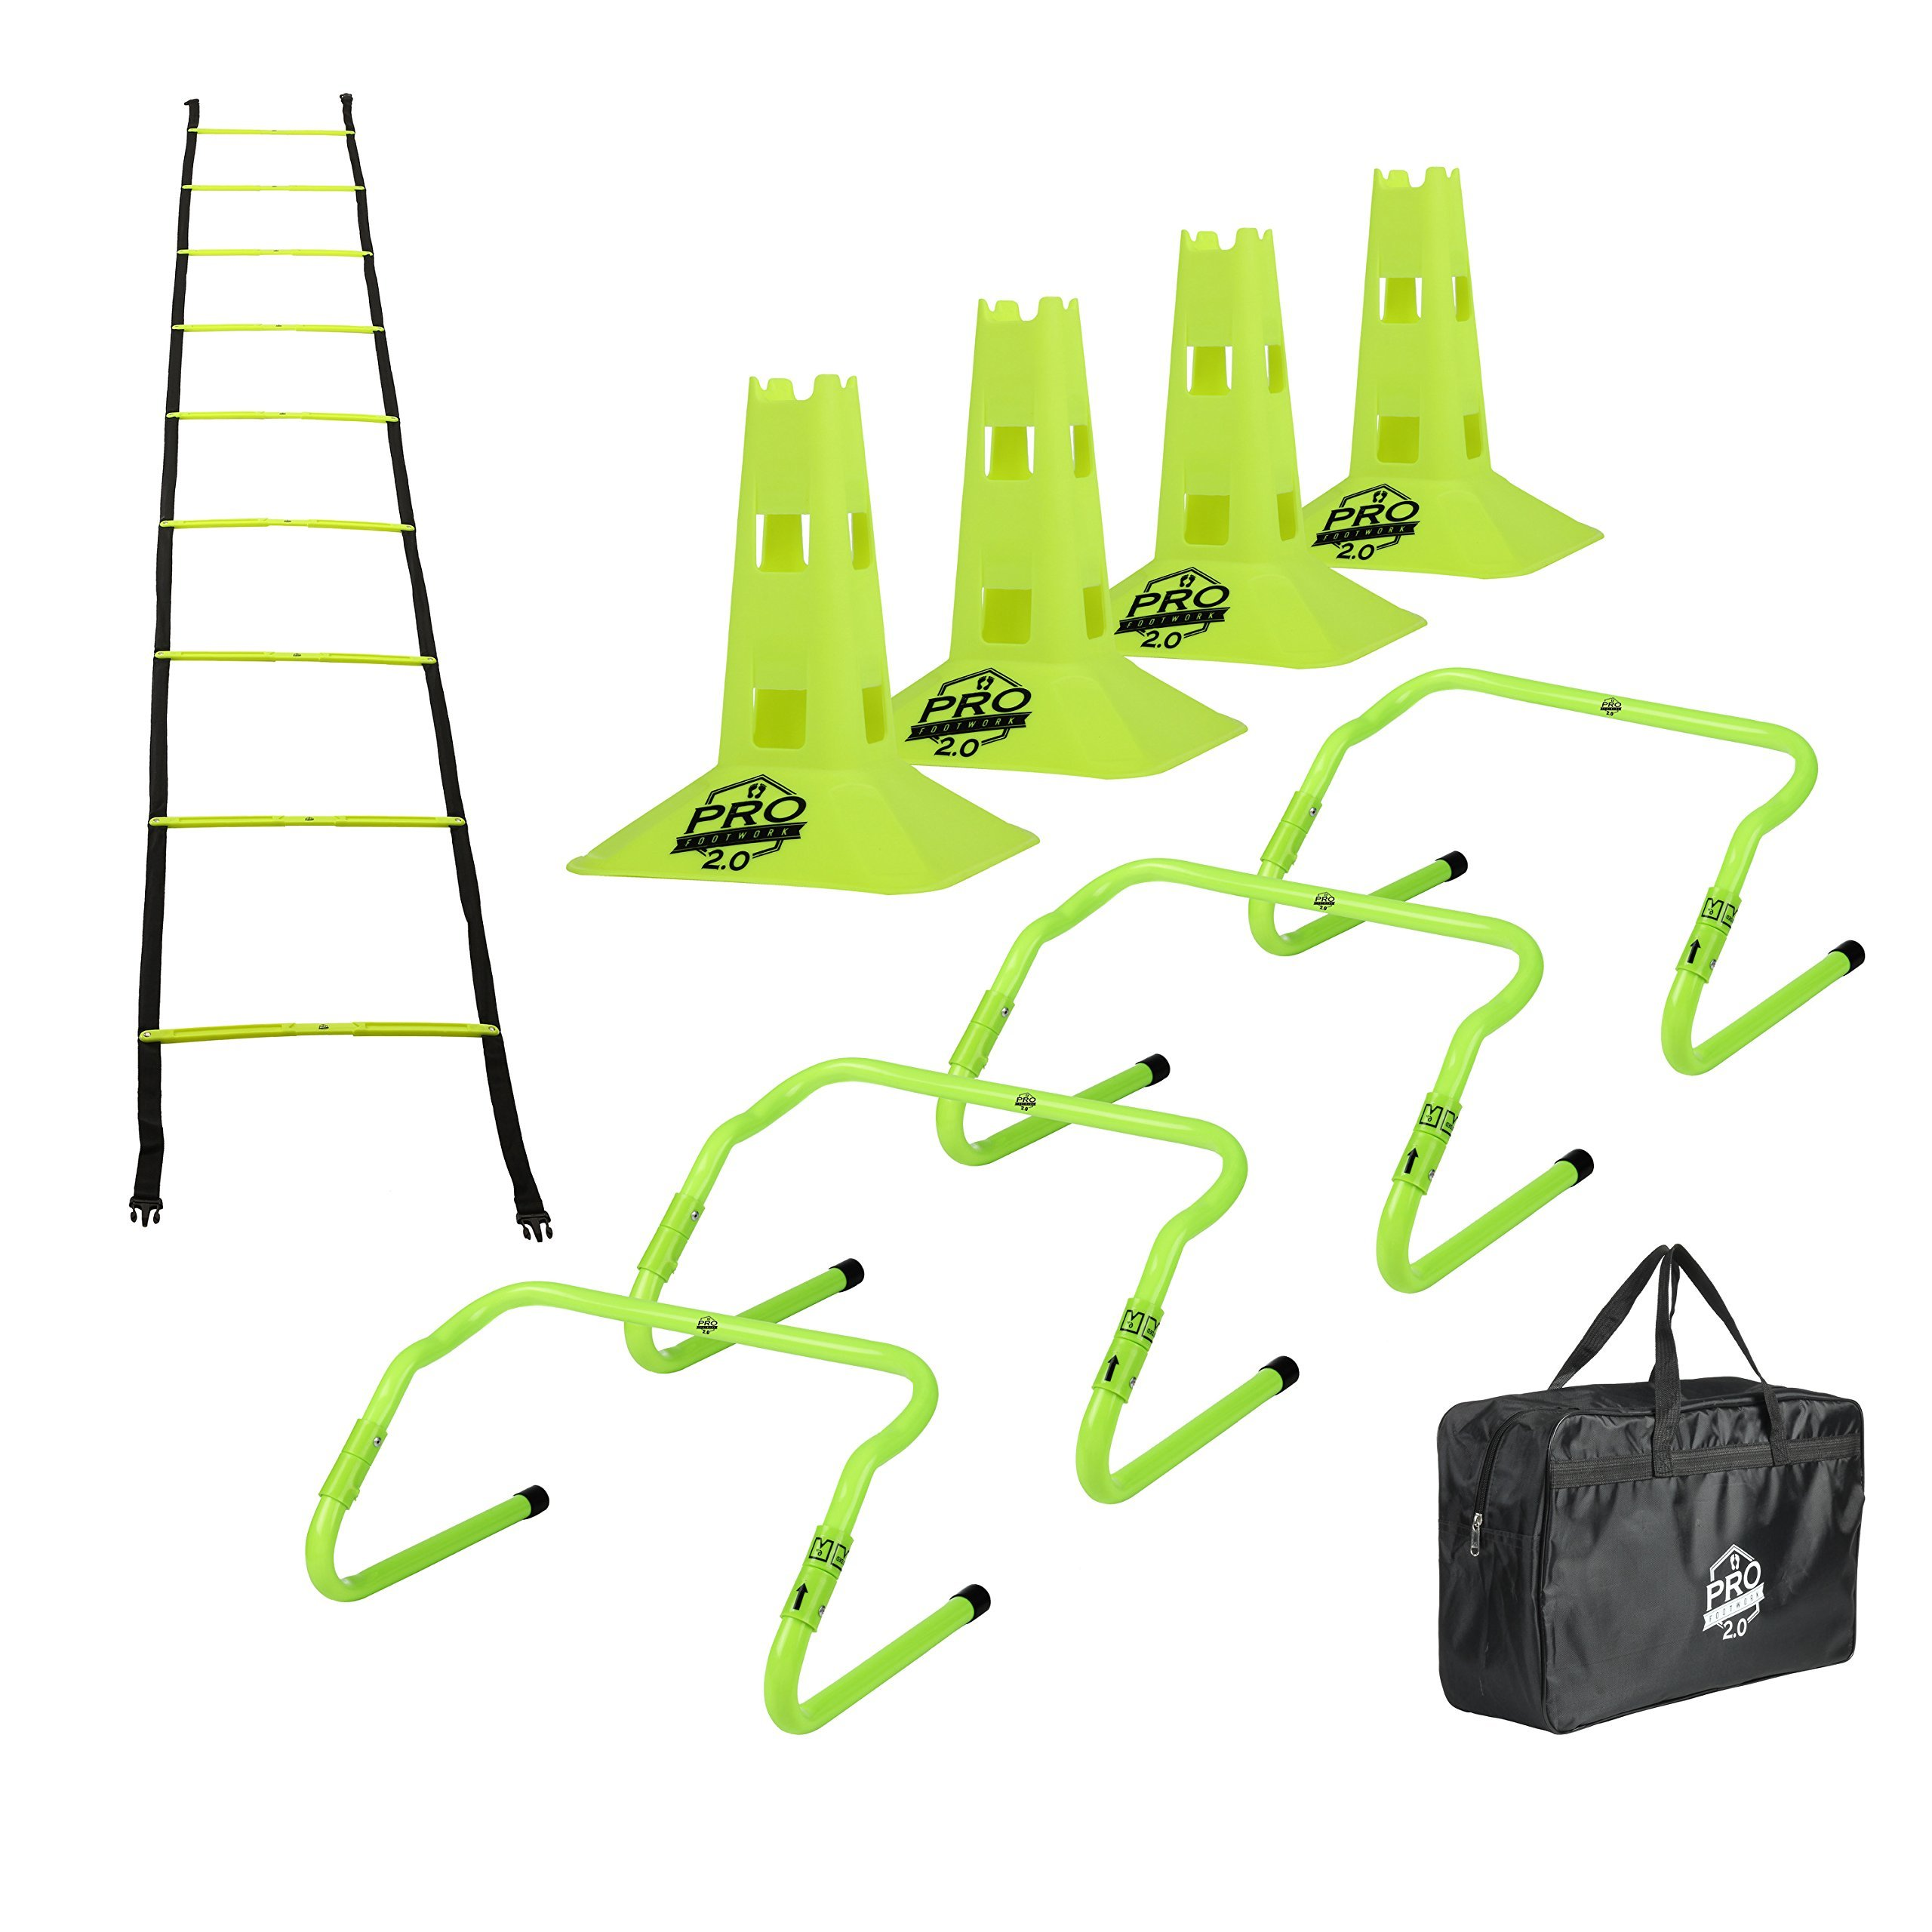 """Pro Footwork Agility Ladder and Hurdle Training Set with Carry Bag - Speed Training Exercise Practice for Soccer, Football & All Sports - Adjustable Heights 6"""", 9"""" & 12"""" (Green-Pro footwork 2.0)"""